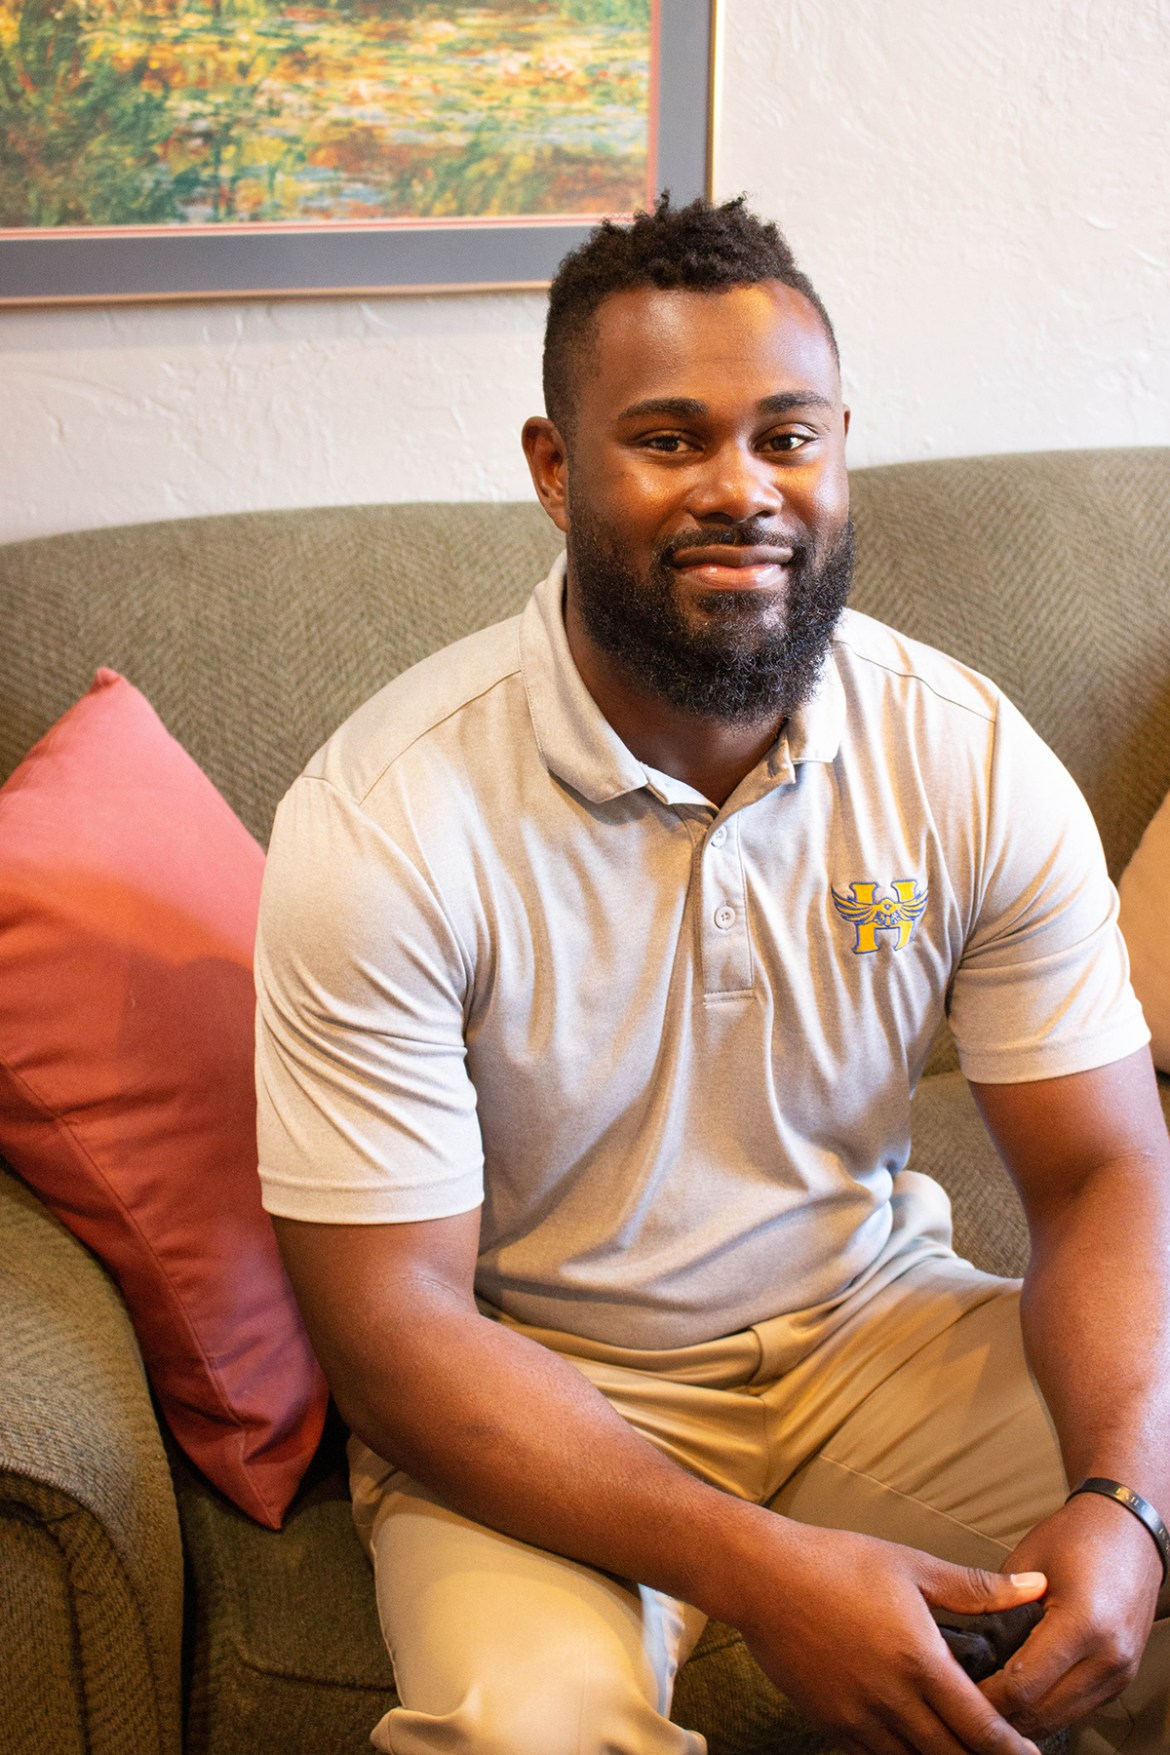 Local realtor DeAngelo Green gives positive message of living as a Black man in Hutch